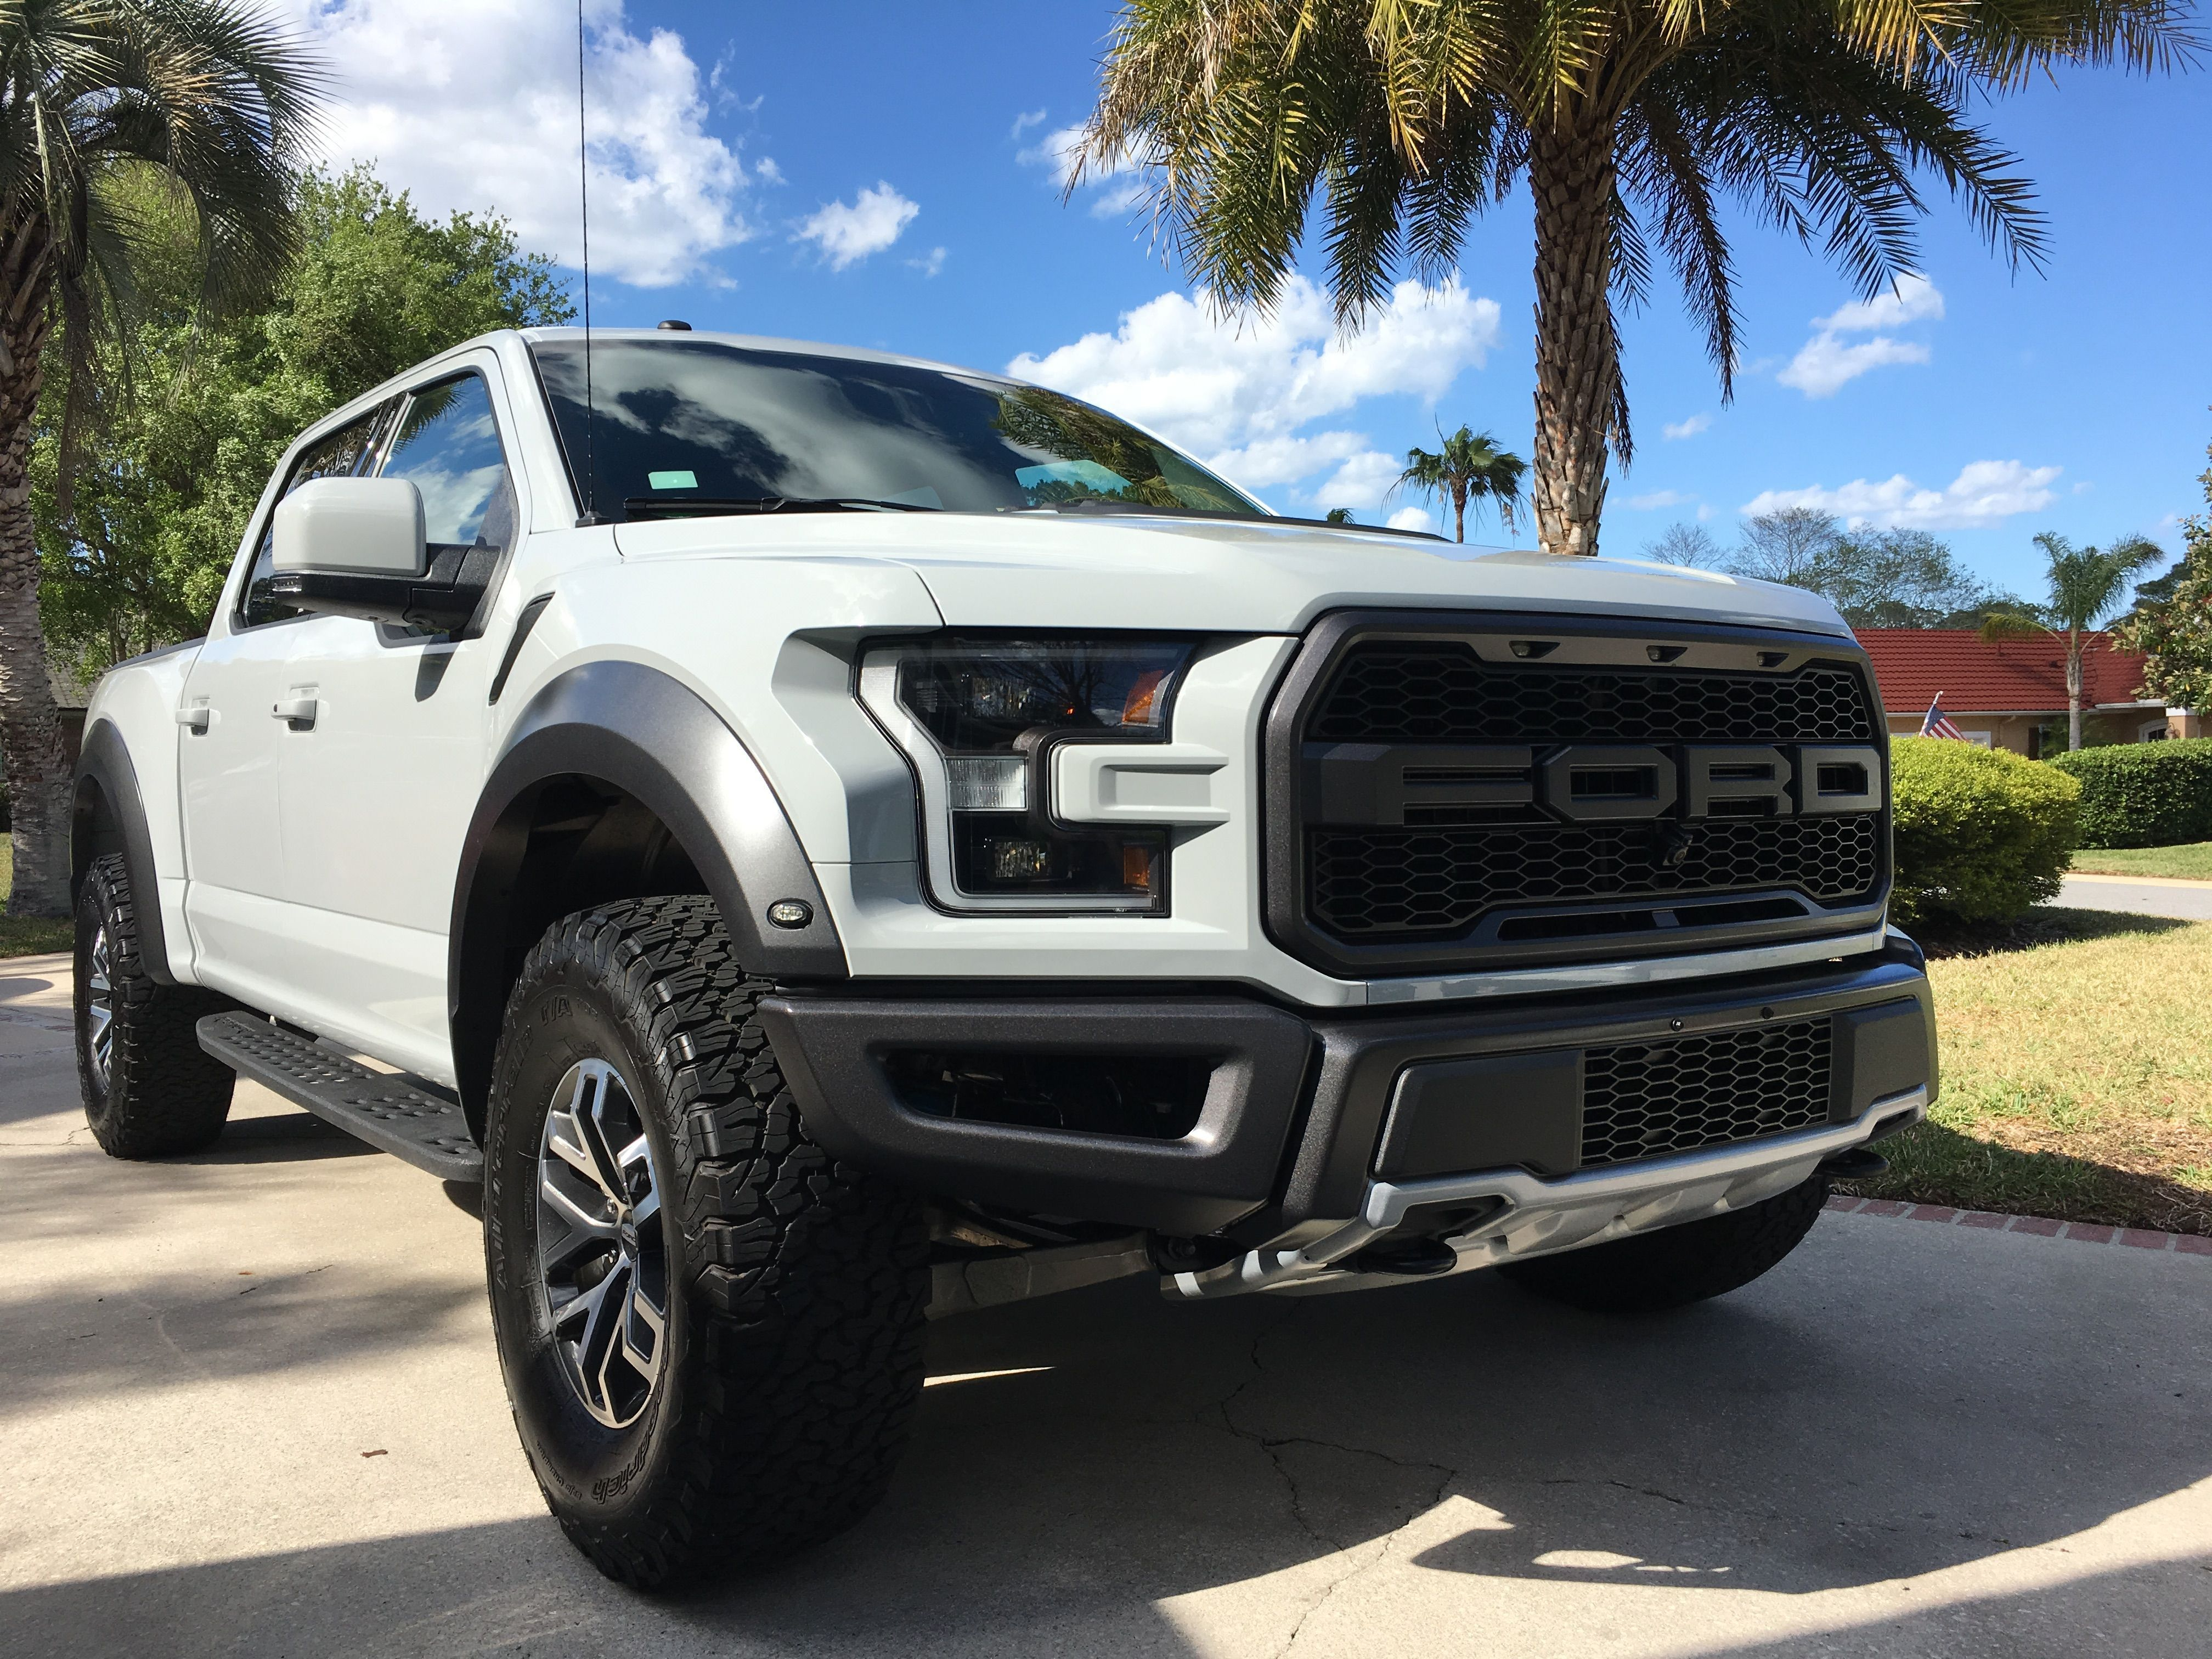 2019 ford F150 Svt Raptor Check more at http://www.best ...